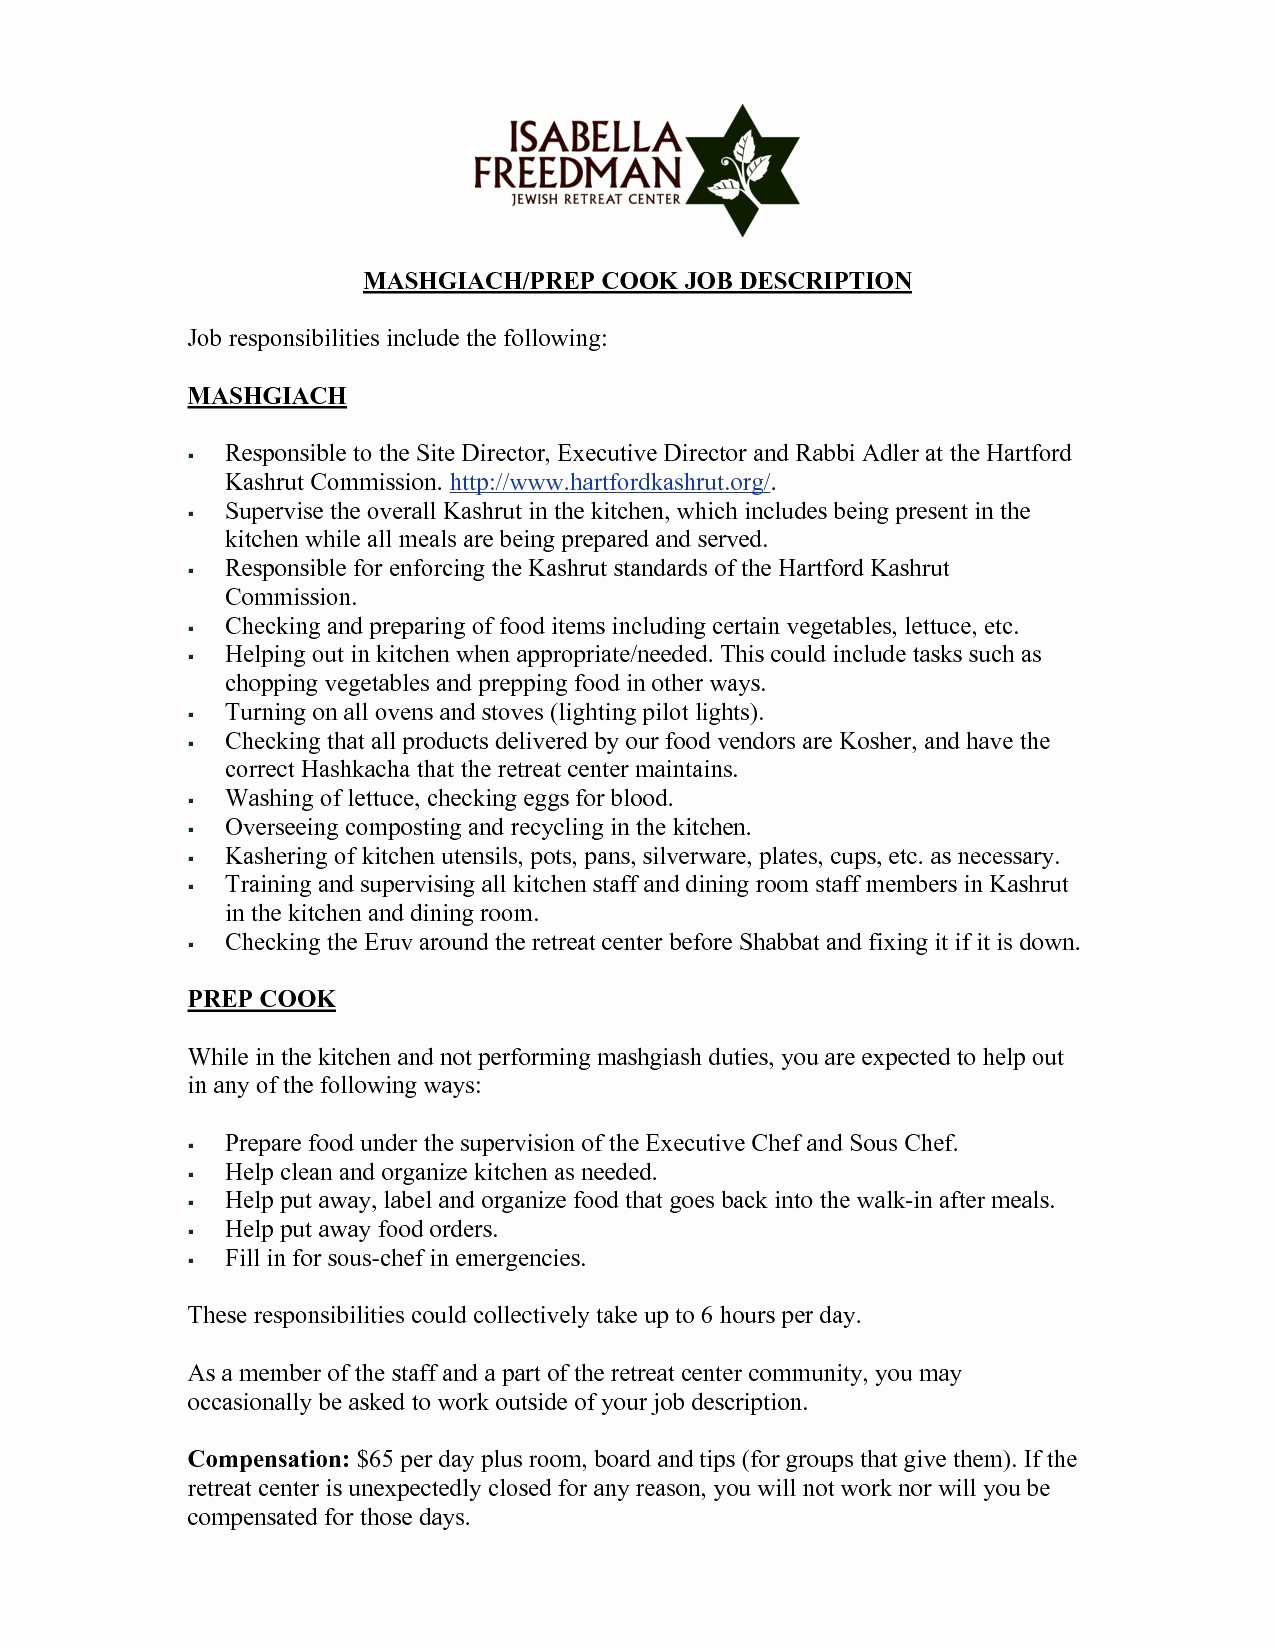 Need Help with Resume - Customer Service Executive Job Description Resume Reference Resume